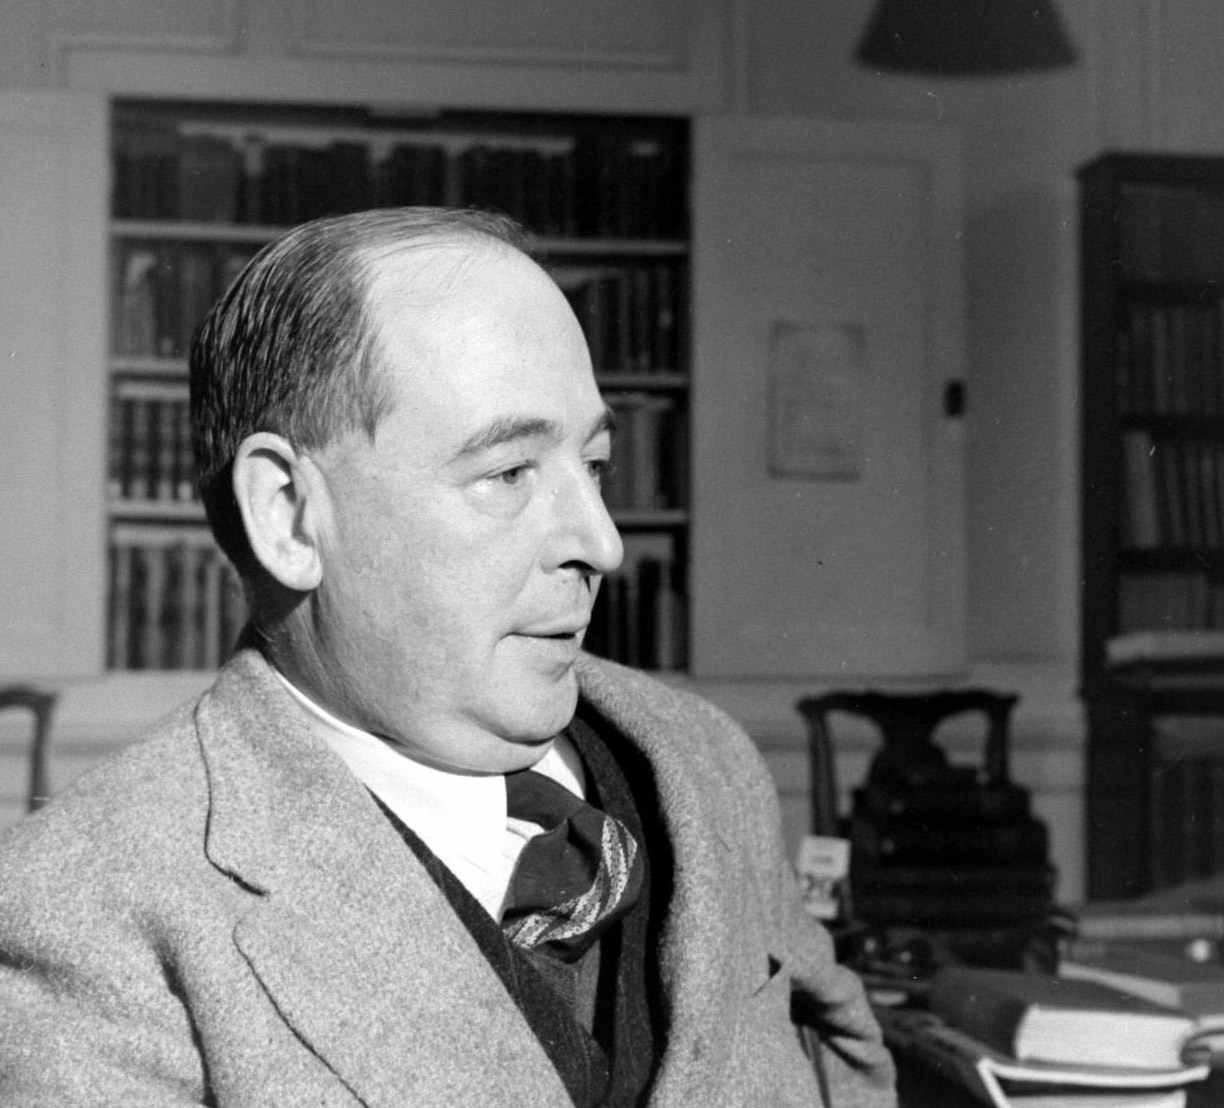 cs lewis Clive staples lewis was born in belfast, ireland, on 29 november 1898 his father was albert james lewis (1863–1929), a solicitor whose father richard had come to ireland from wales during the mid-19th century.